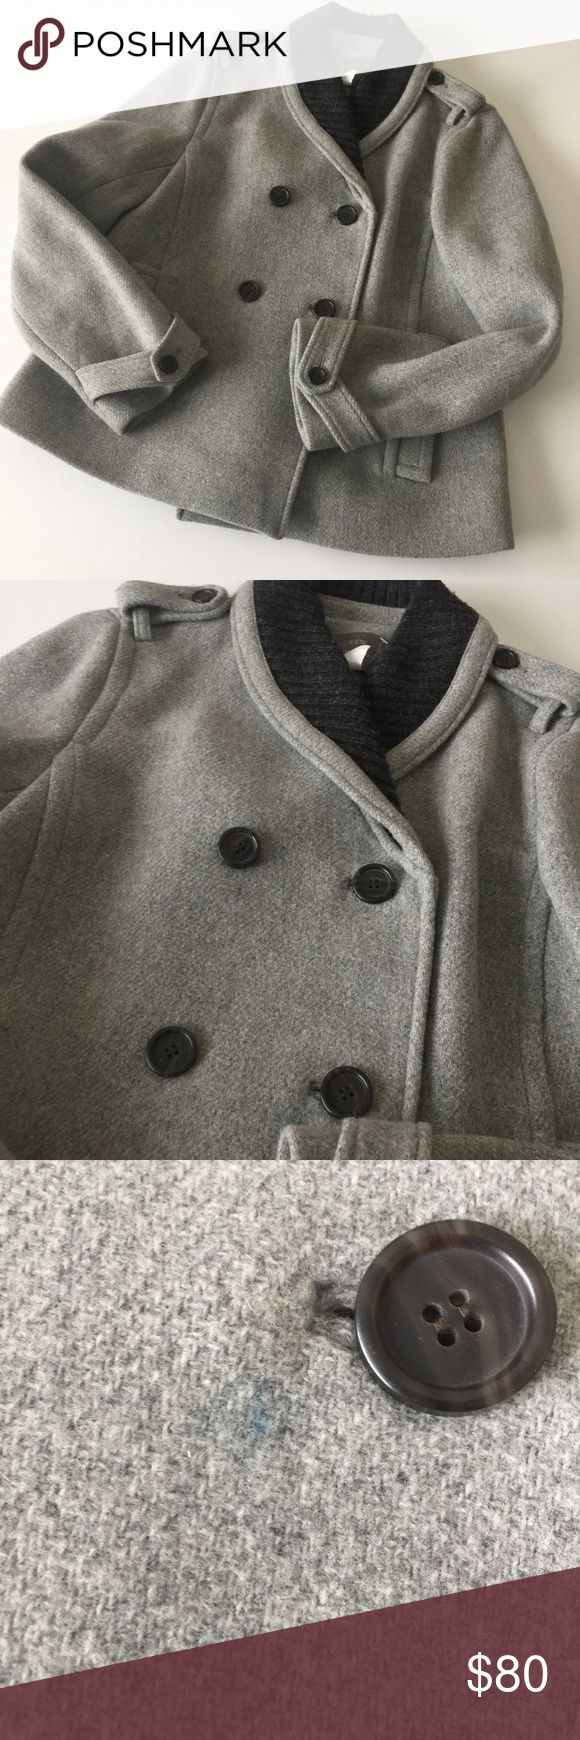 J CREW Stadium cloth Nello Gori Sasha Peacoat  10 Really nice JCREW size 10. Only flaw is a small blue ink mark. Dry clean only. The stain can probably be removed at the dry cleaners J. Crew Jackets & Coats Pea Coats